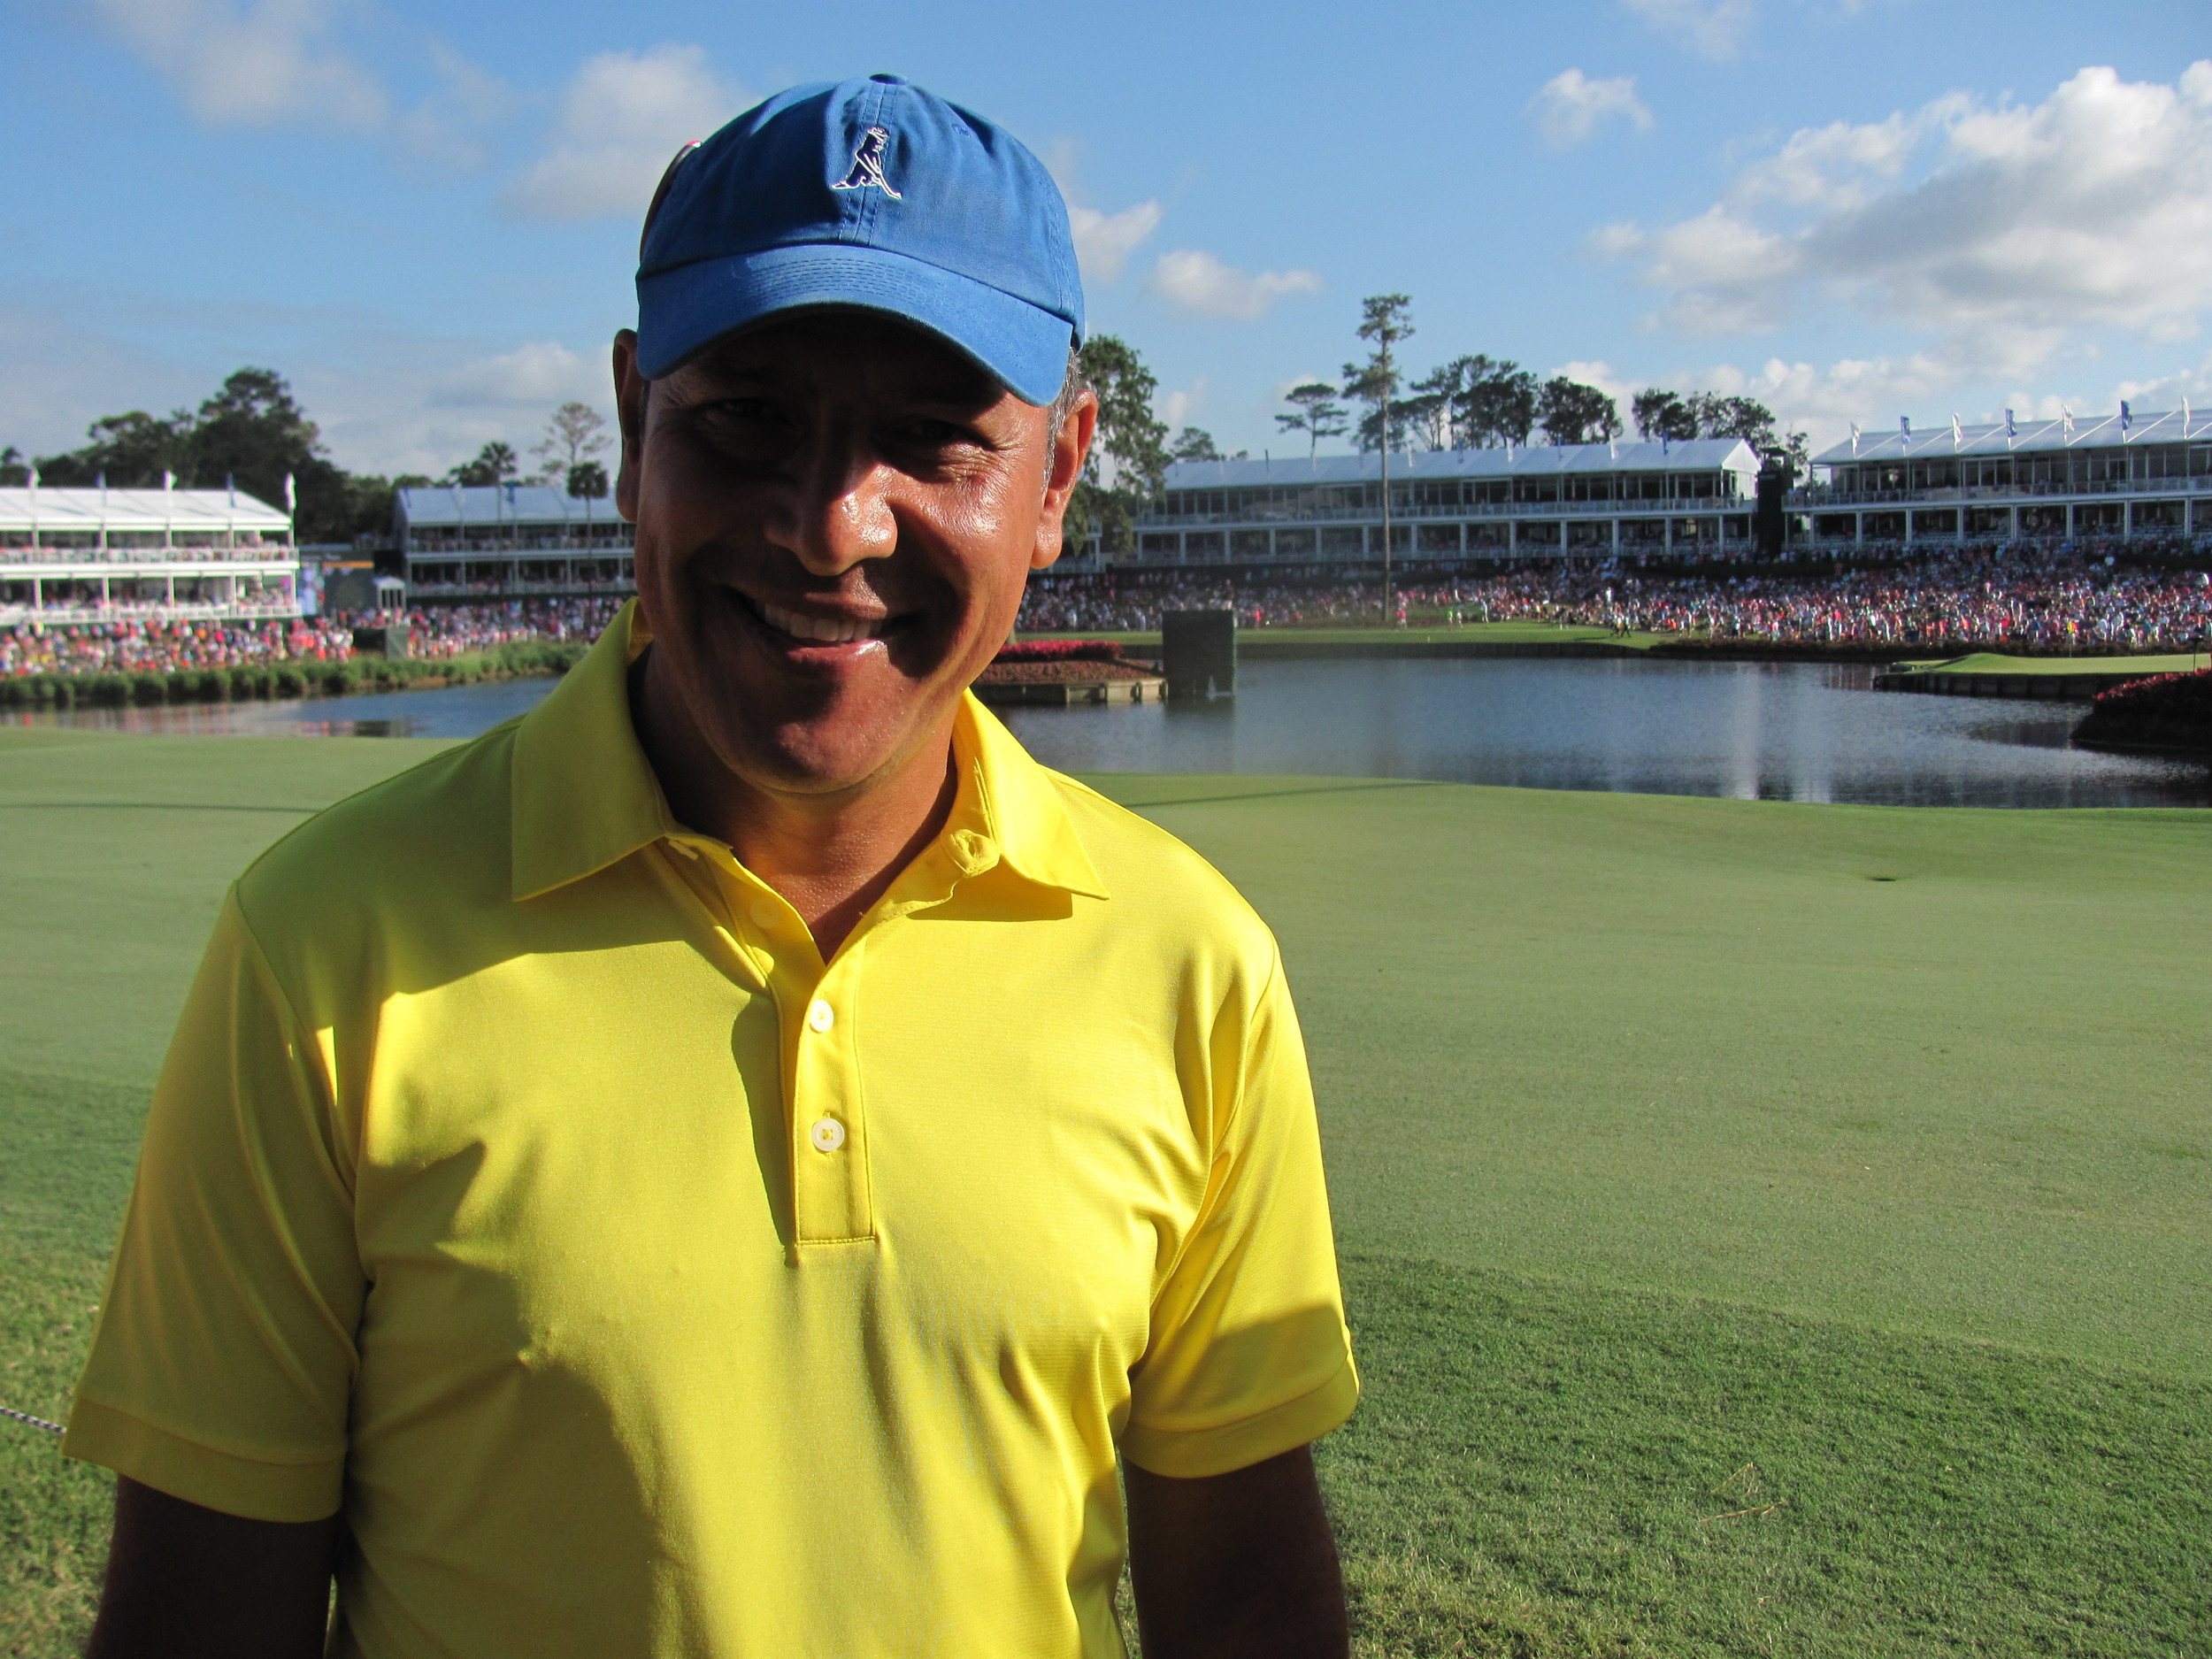 Fan Edgardo Catari of Colombia stands in front of the island green.